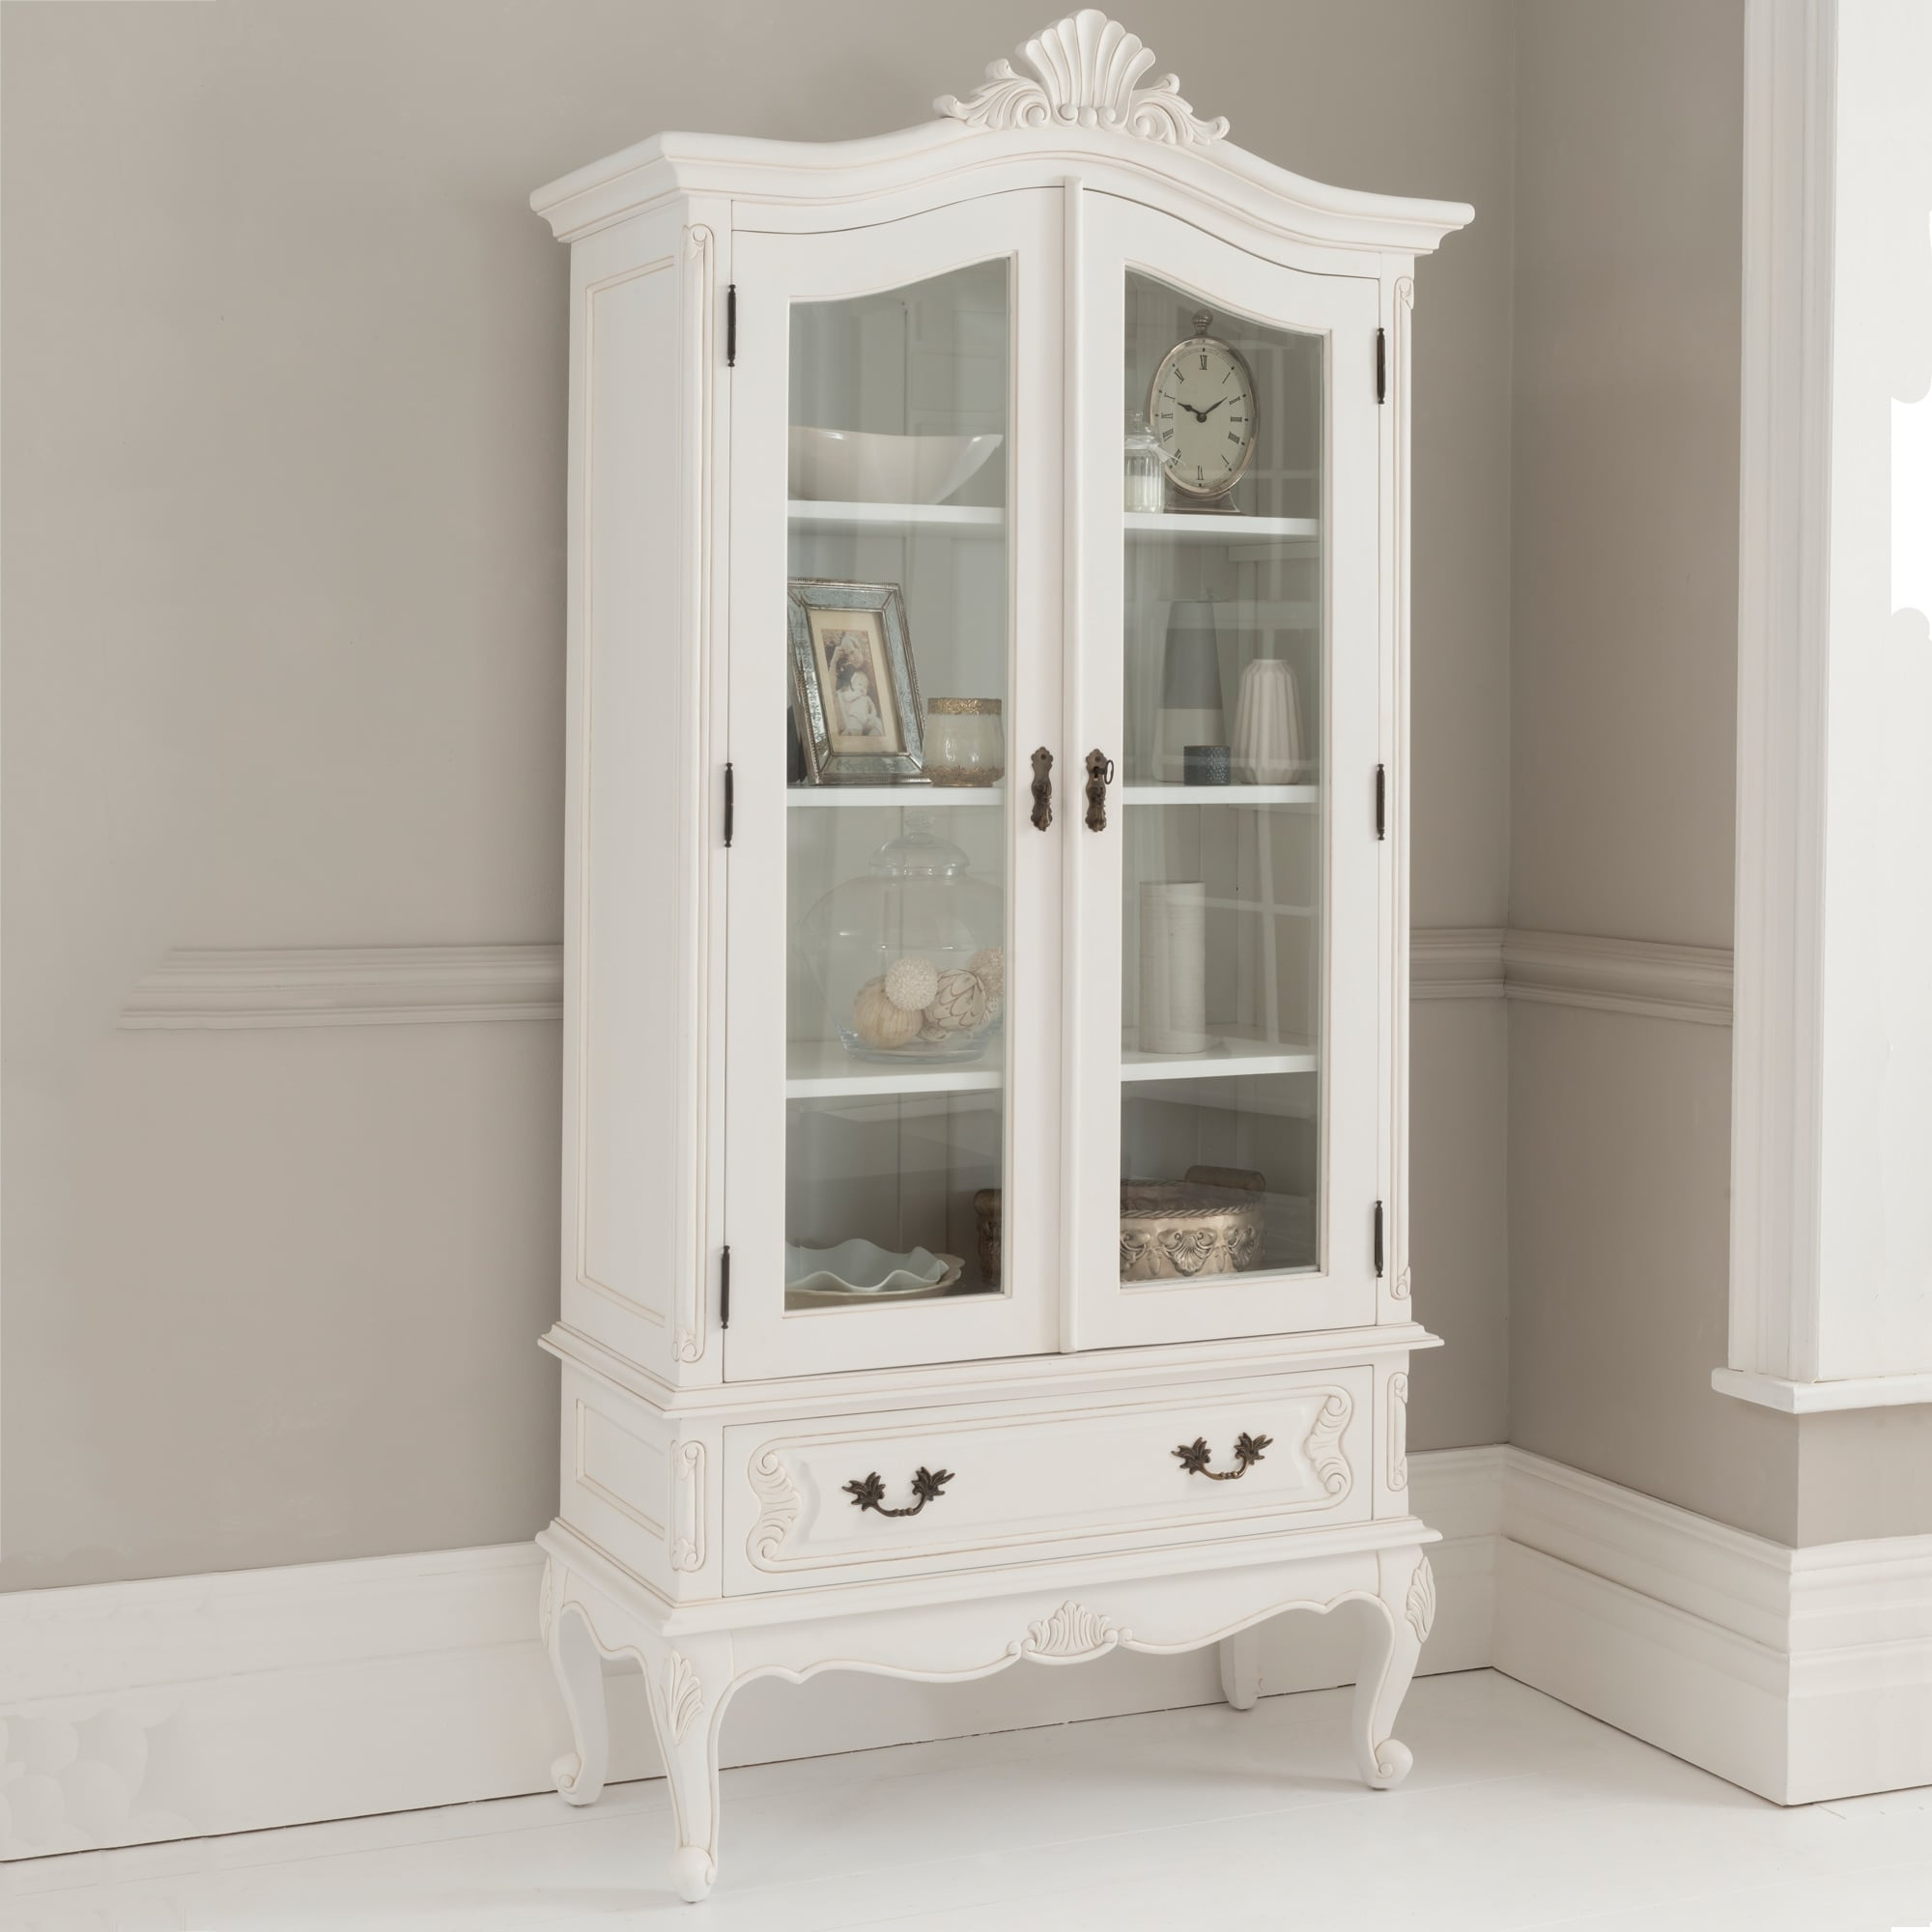 Genial Antique French Style Display Cabinet